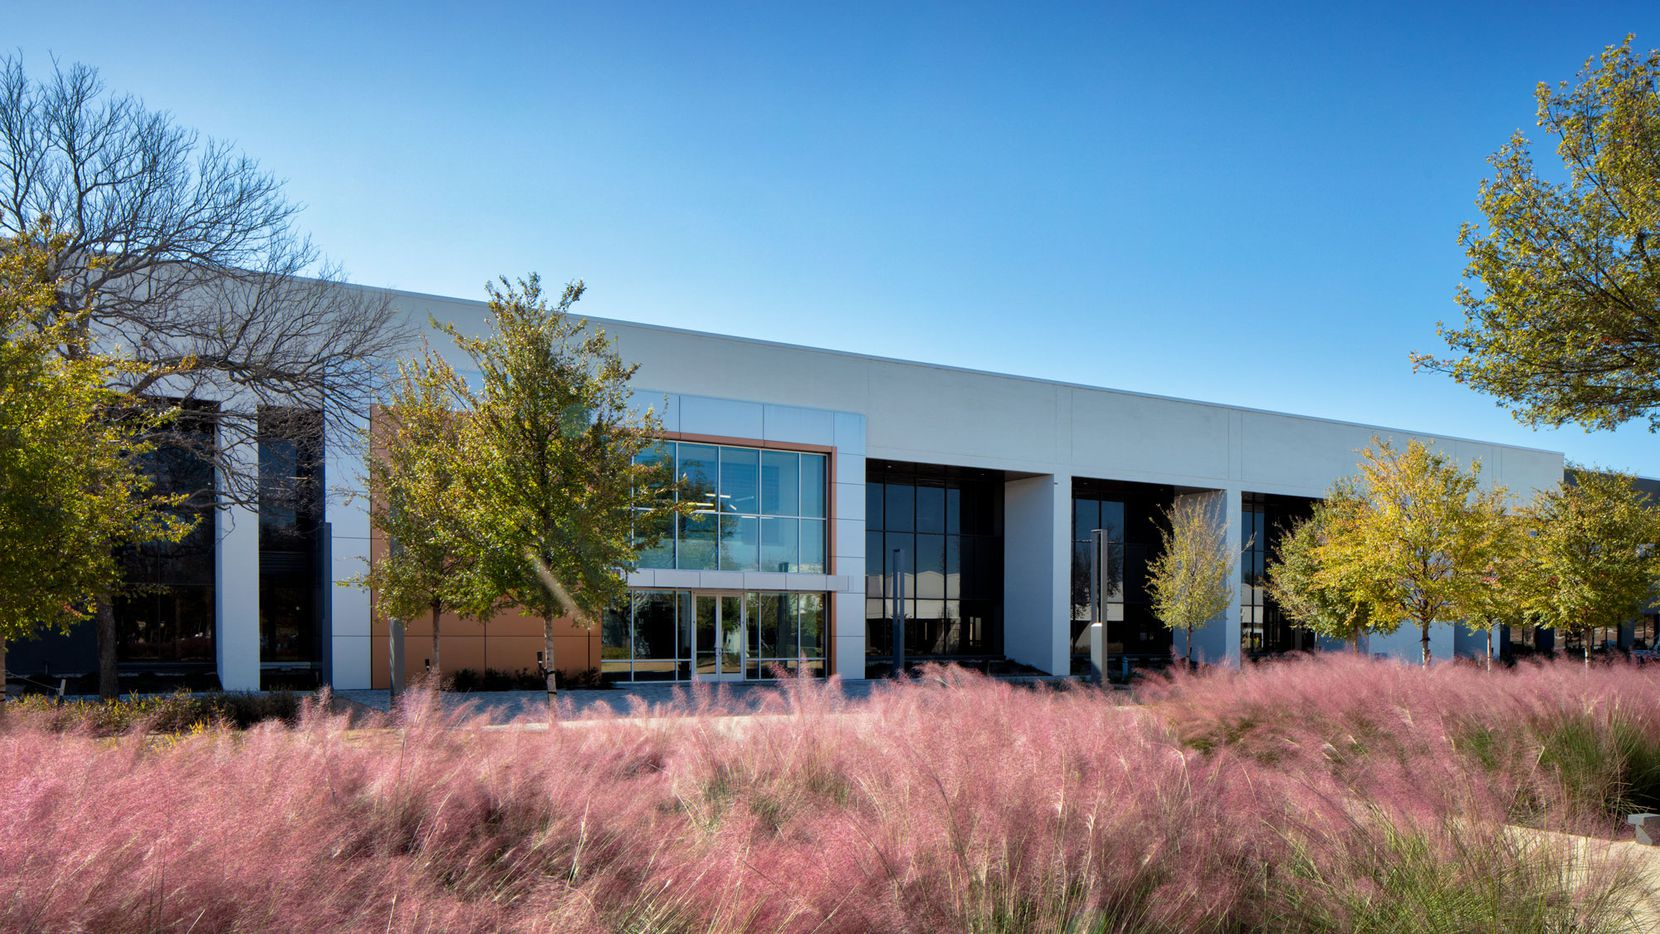 Peloton will have more than 130,000 square feet of offices in the Legacy Central development in Plano.